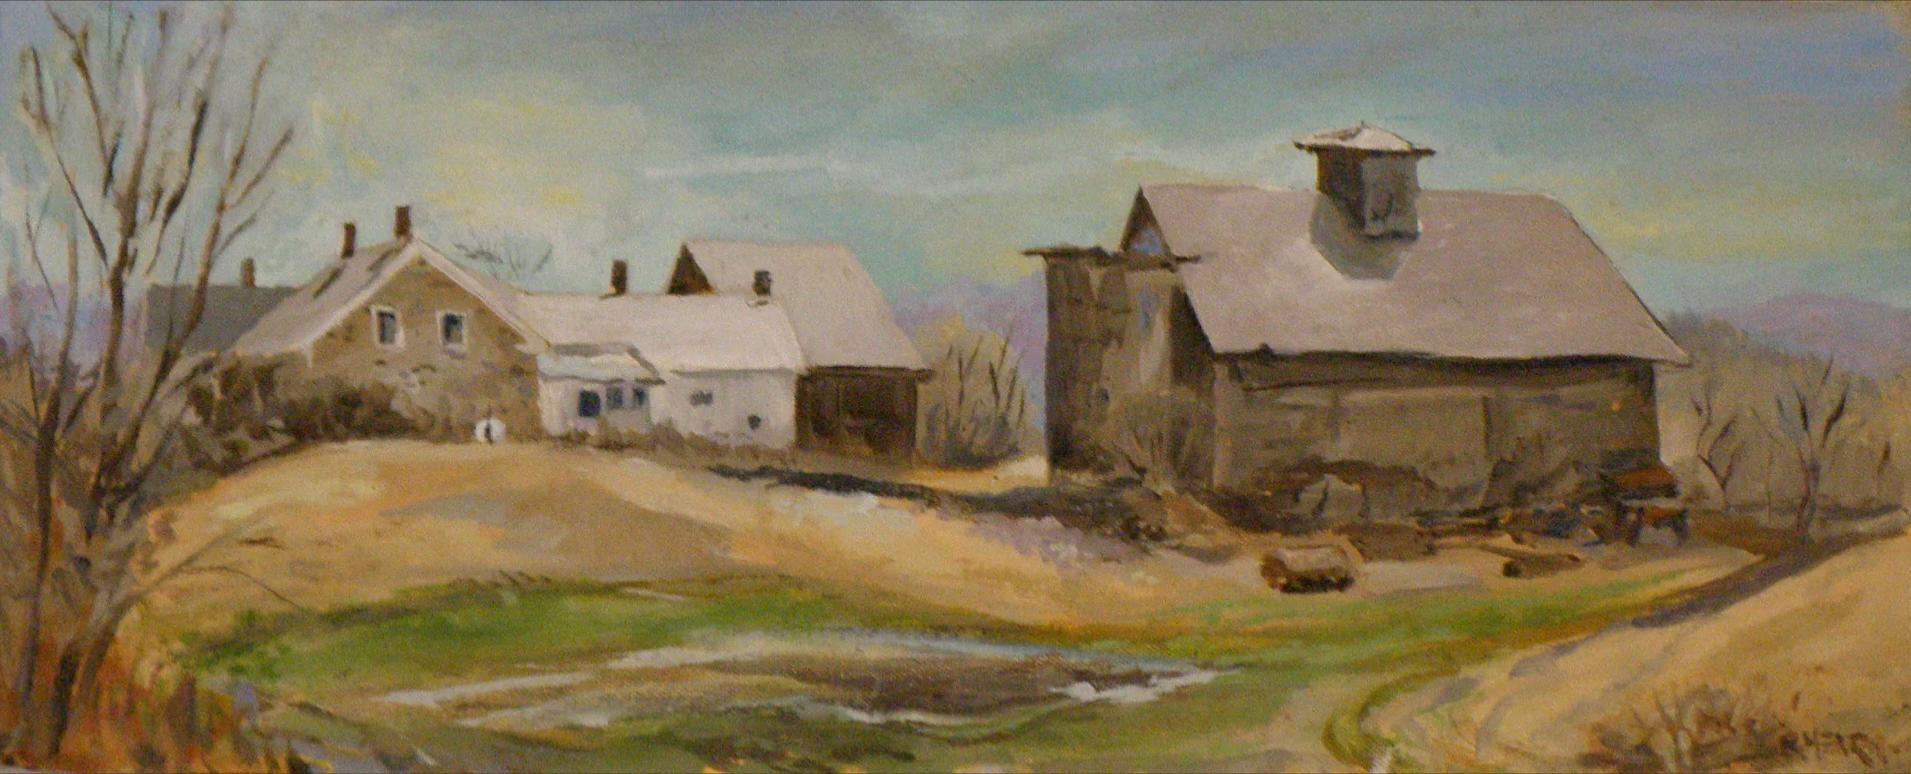 Holden Farm study, Green Mountain Turnpike, Chester, Vermont; oil on panel